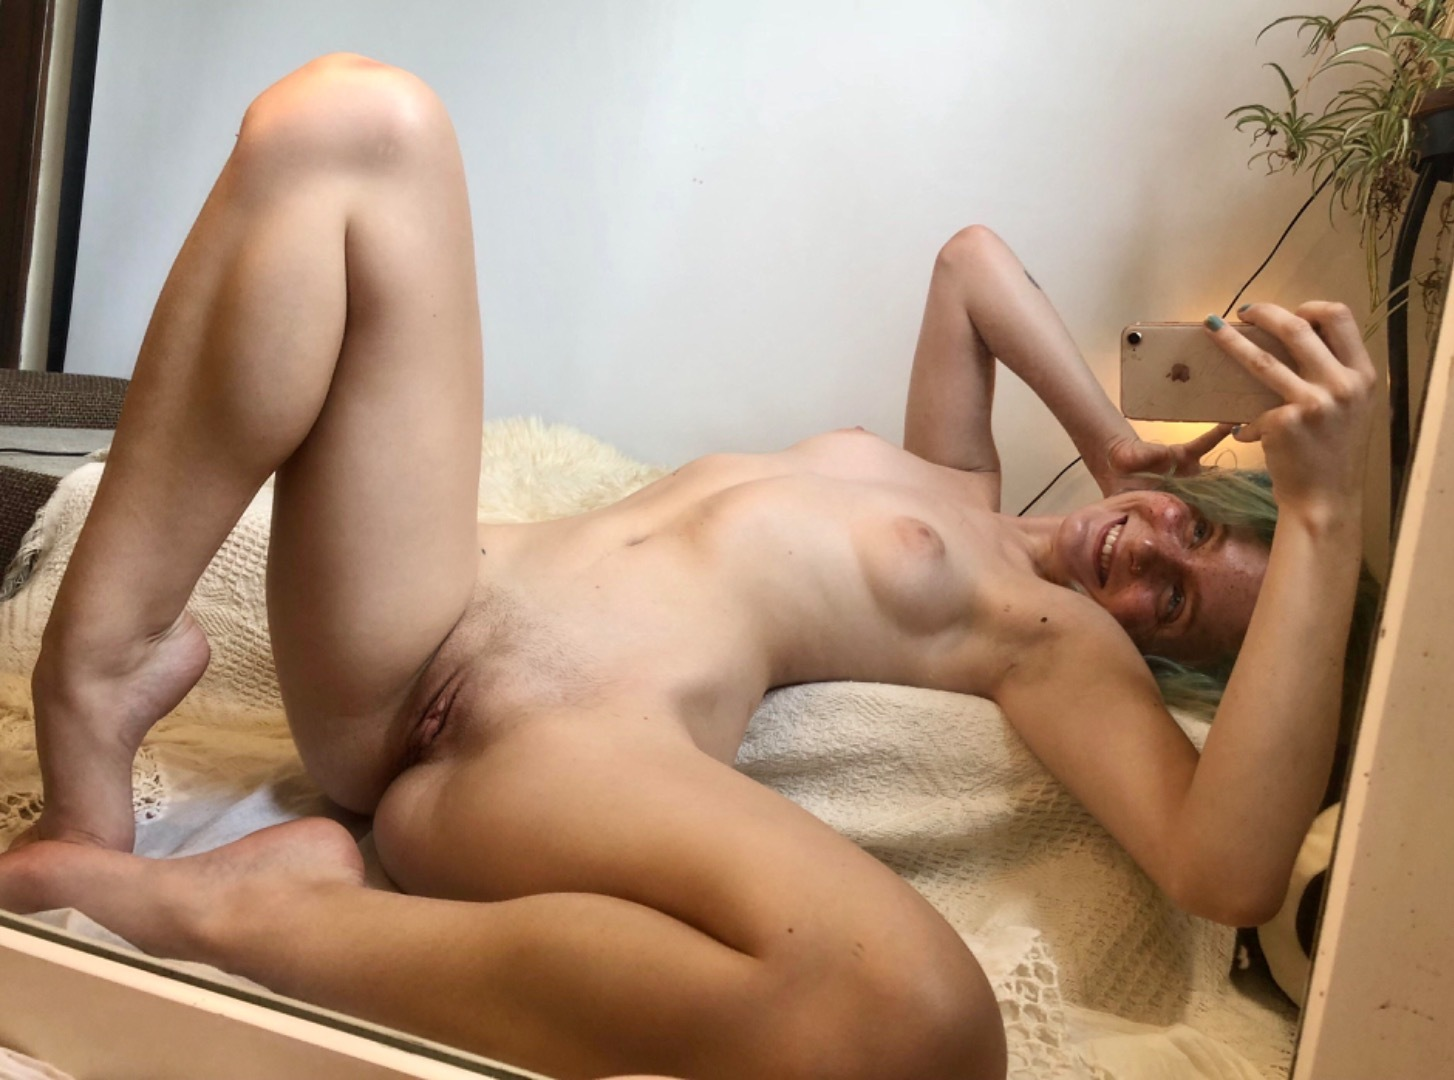 my sons admirer is a slut Amateur, Boobs, Coinslot, Cunt, Fucktoy, Labia, Nipples, Puffypussy, Pussy, Selfie, Sexy, Shaved, Teen, Tits, Ziplock